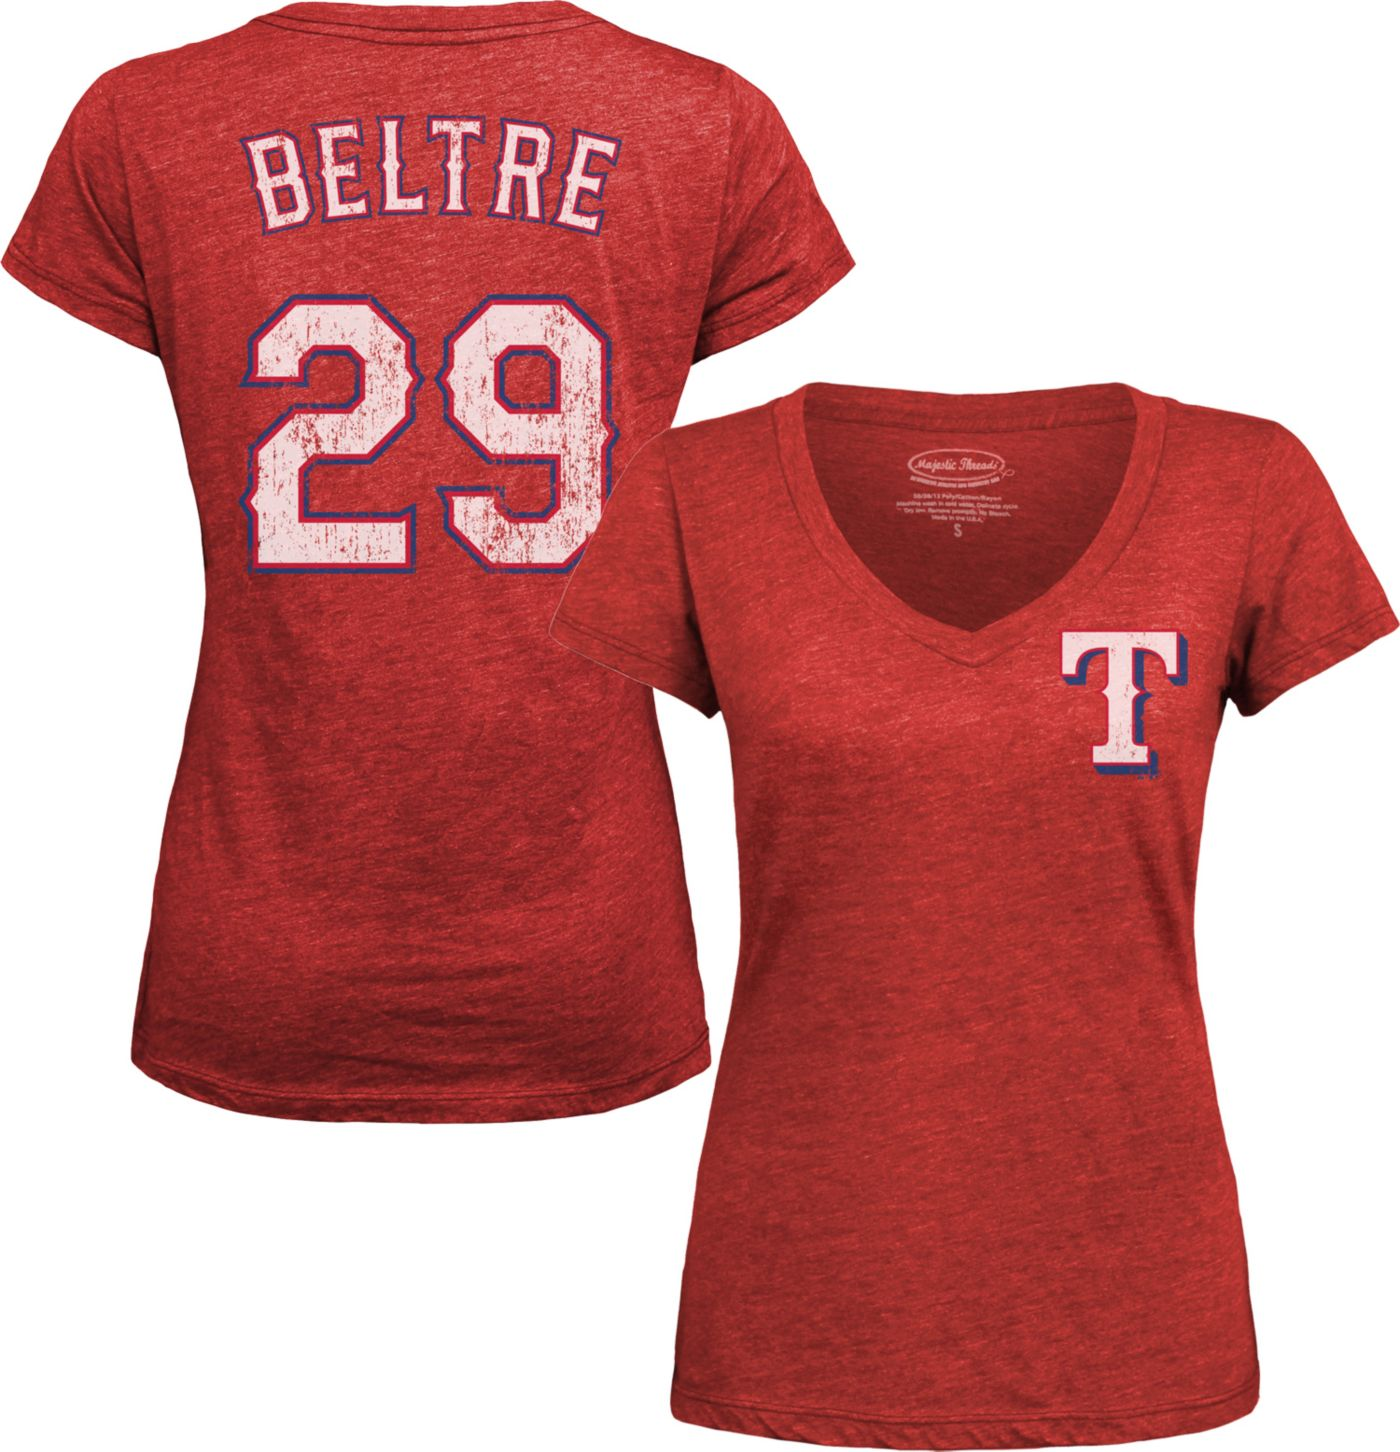 Majestic Threads Women's Texas Rangers Adrian Beltre Red V-Neck T-Shirt